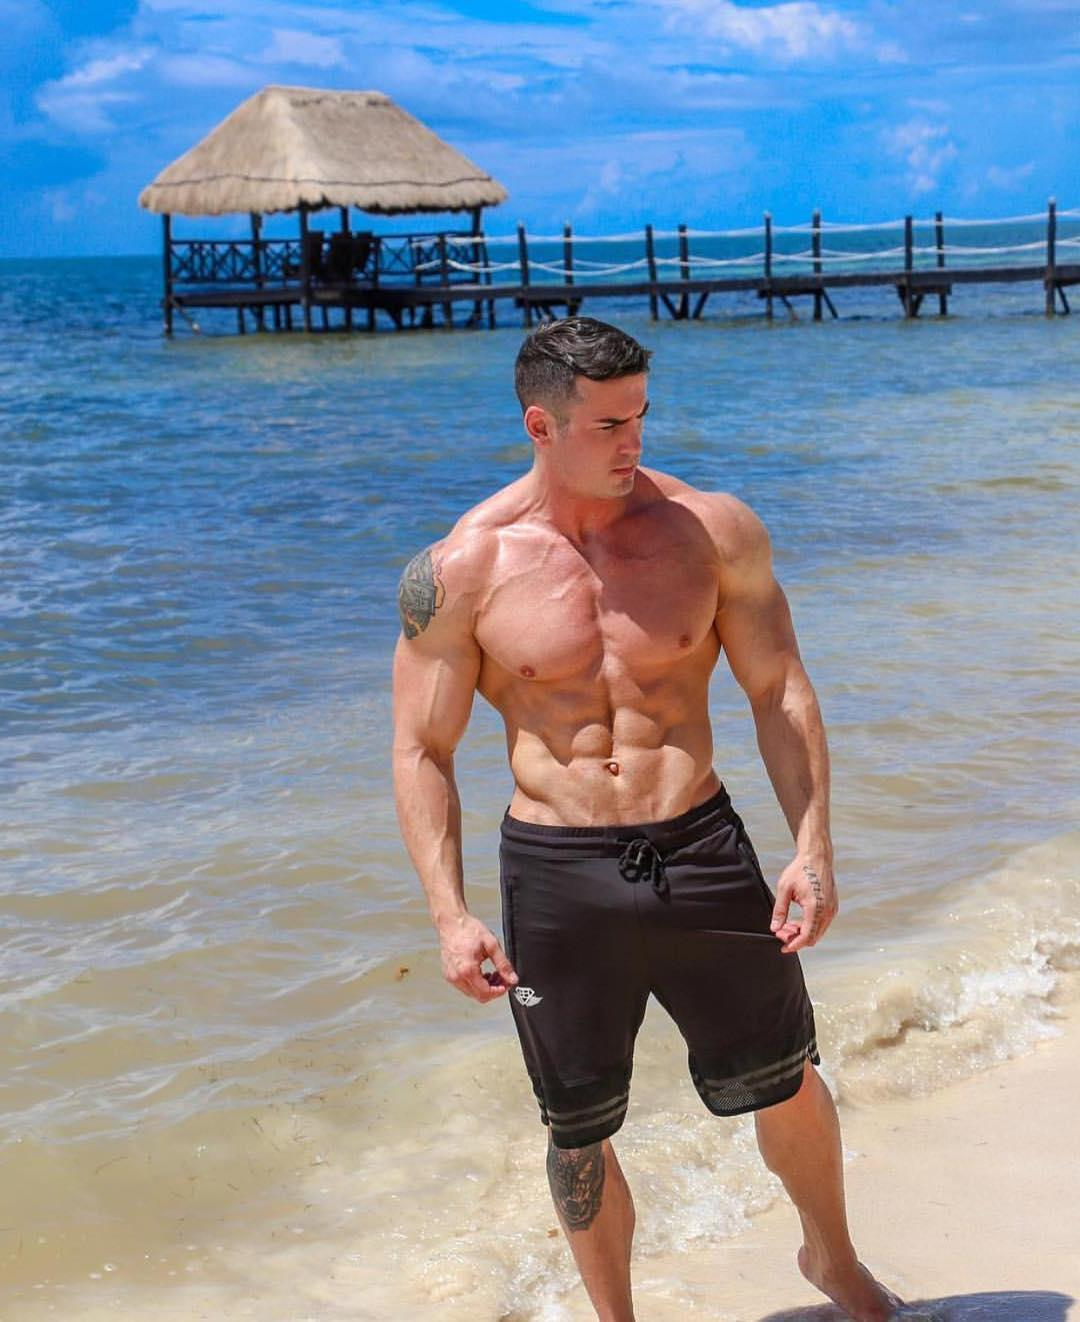 hot-ripped-abs-guys-collin-joseph-fit-shirtless-hard-muscle-daddy-beach-dilf